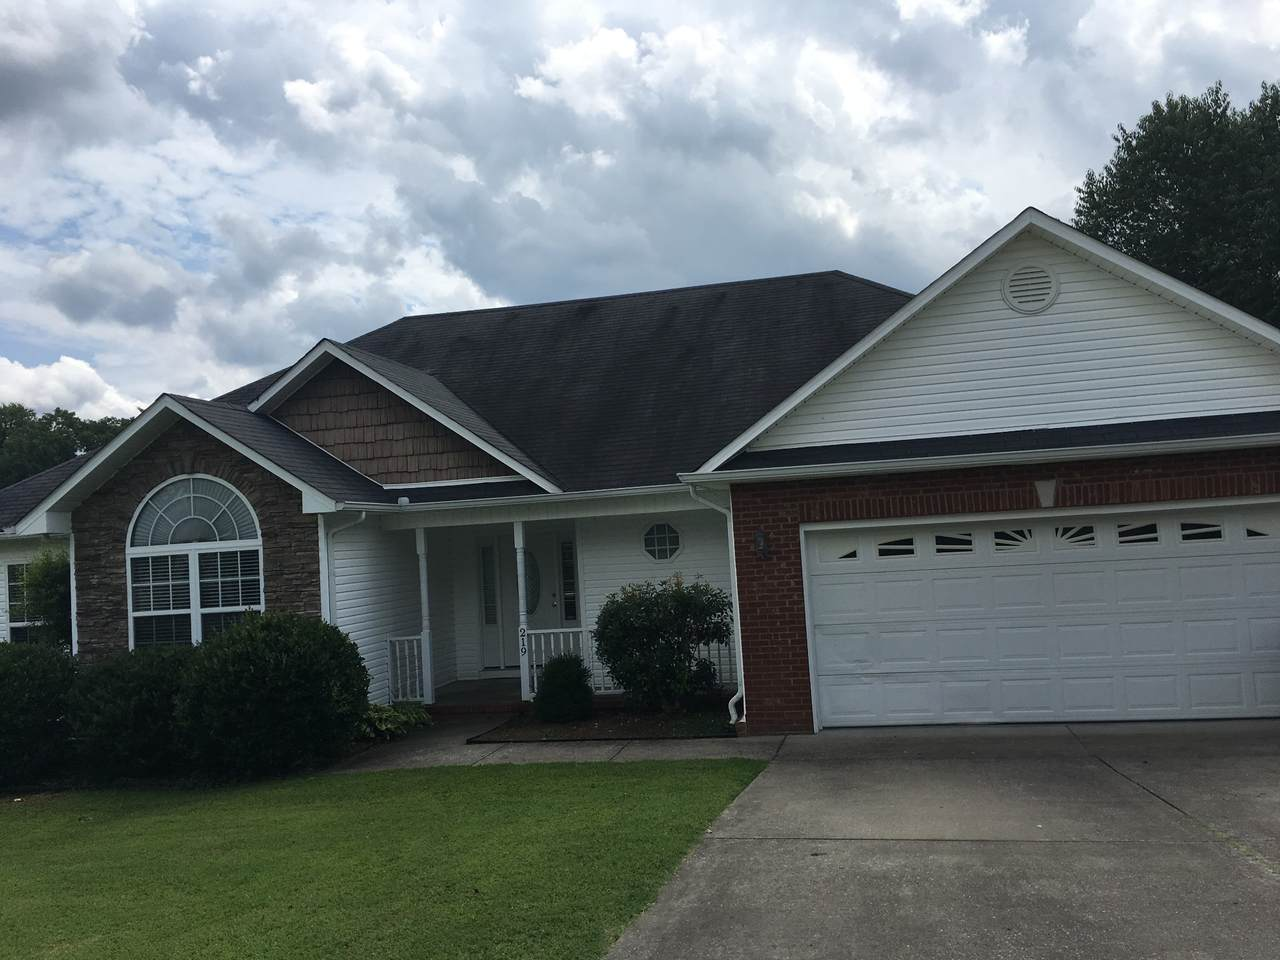 219 Cross Valley Dr - Photo 1